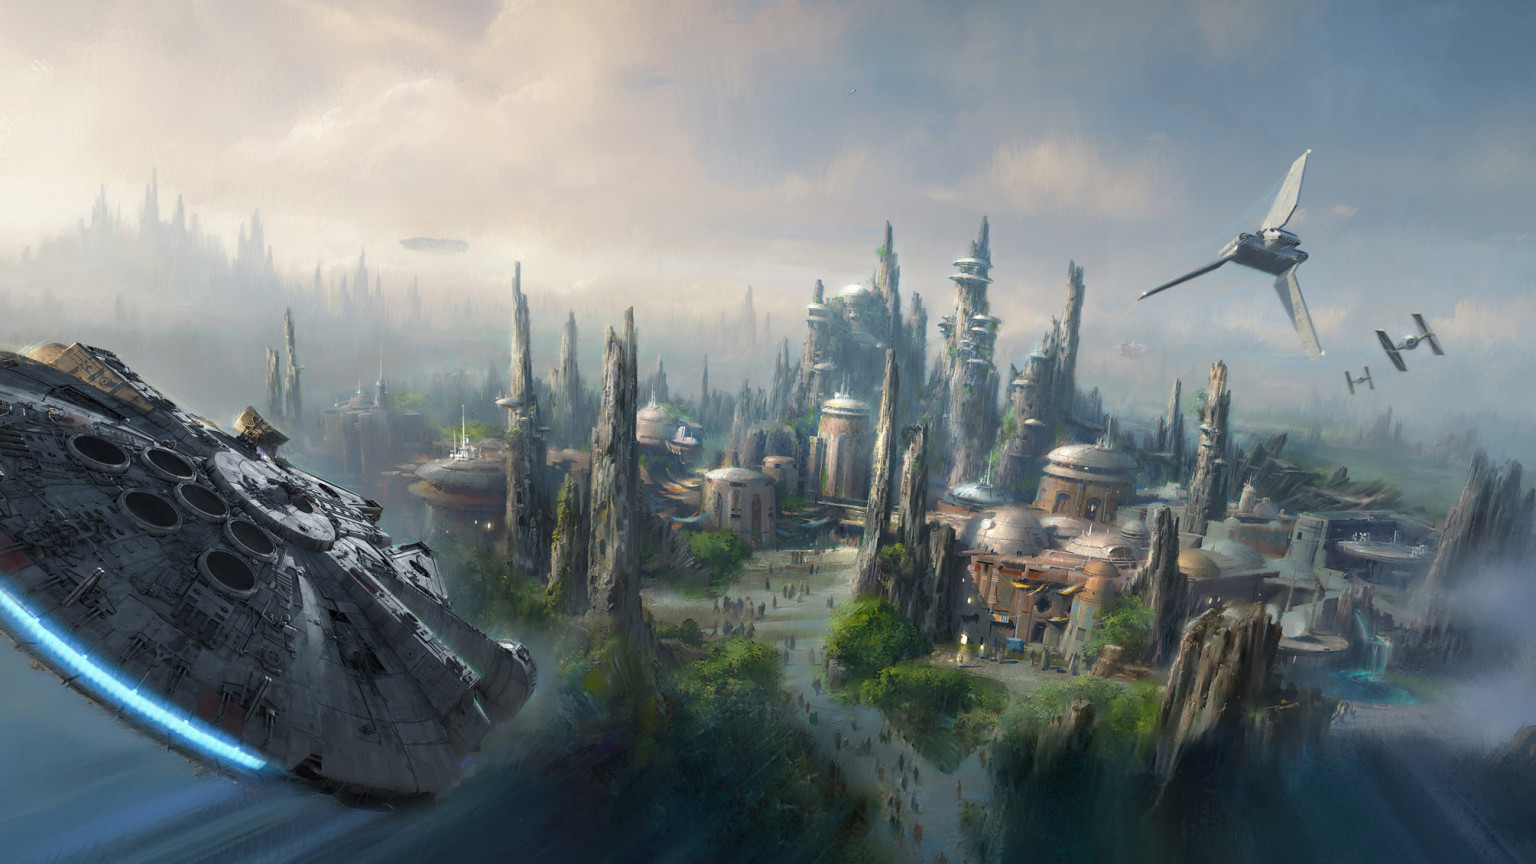 Star Wars theme park coming to Disneyland and Disneyworld